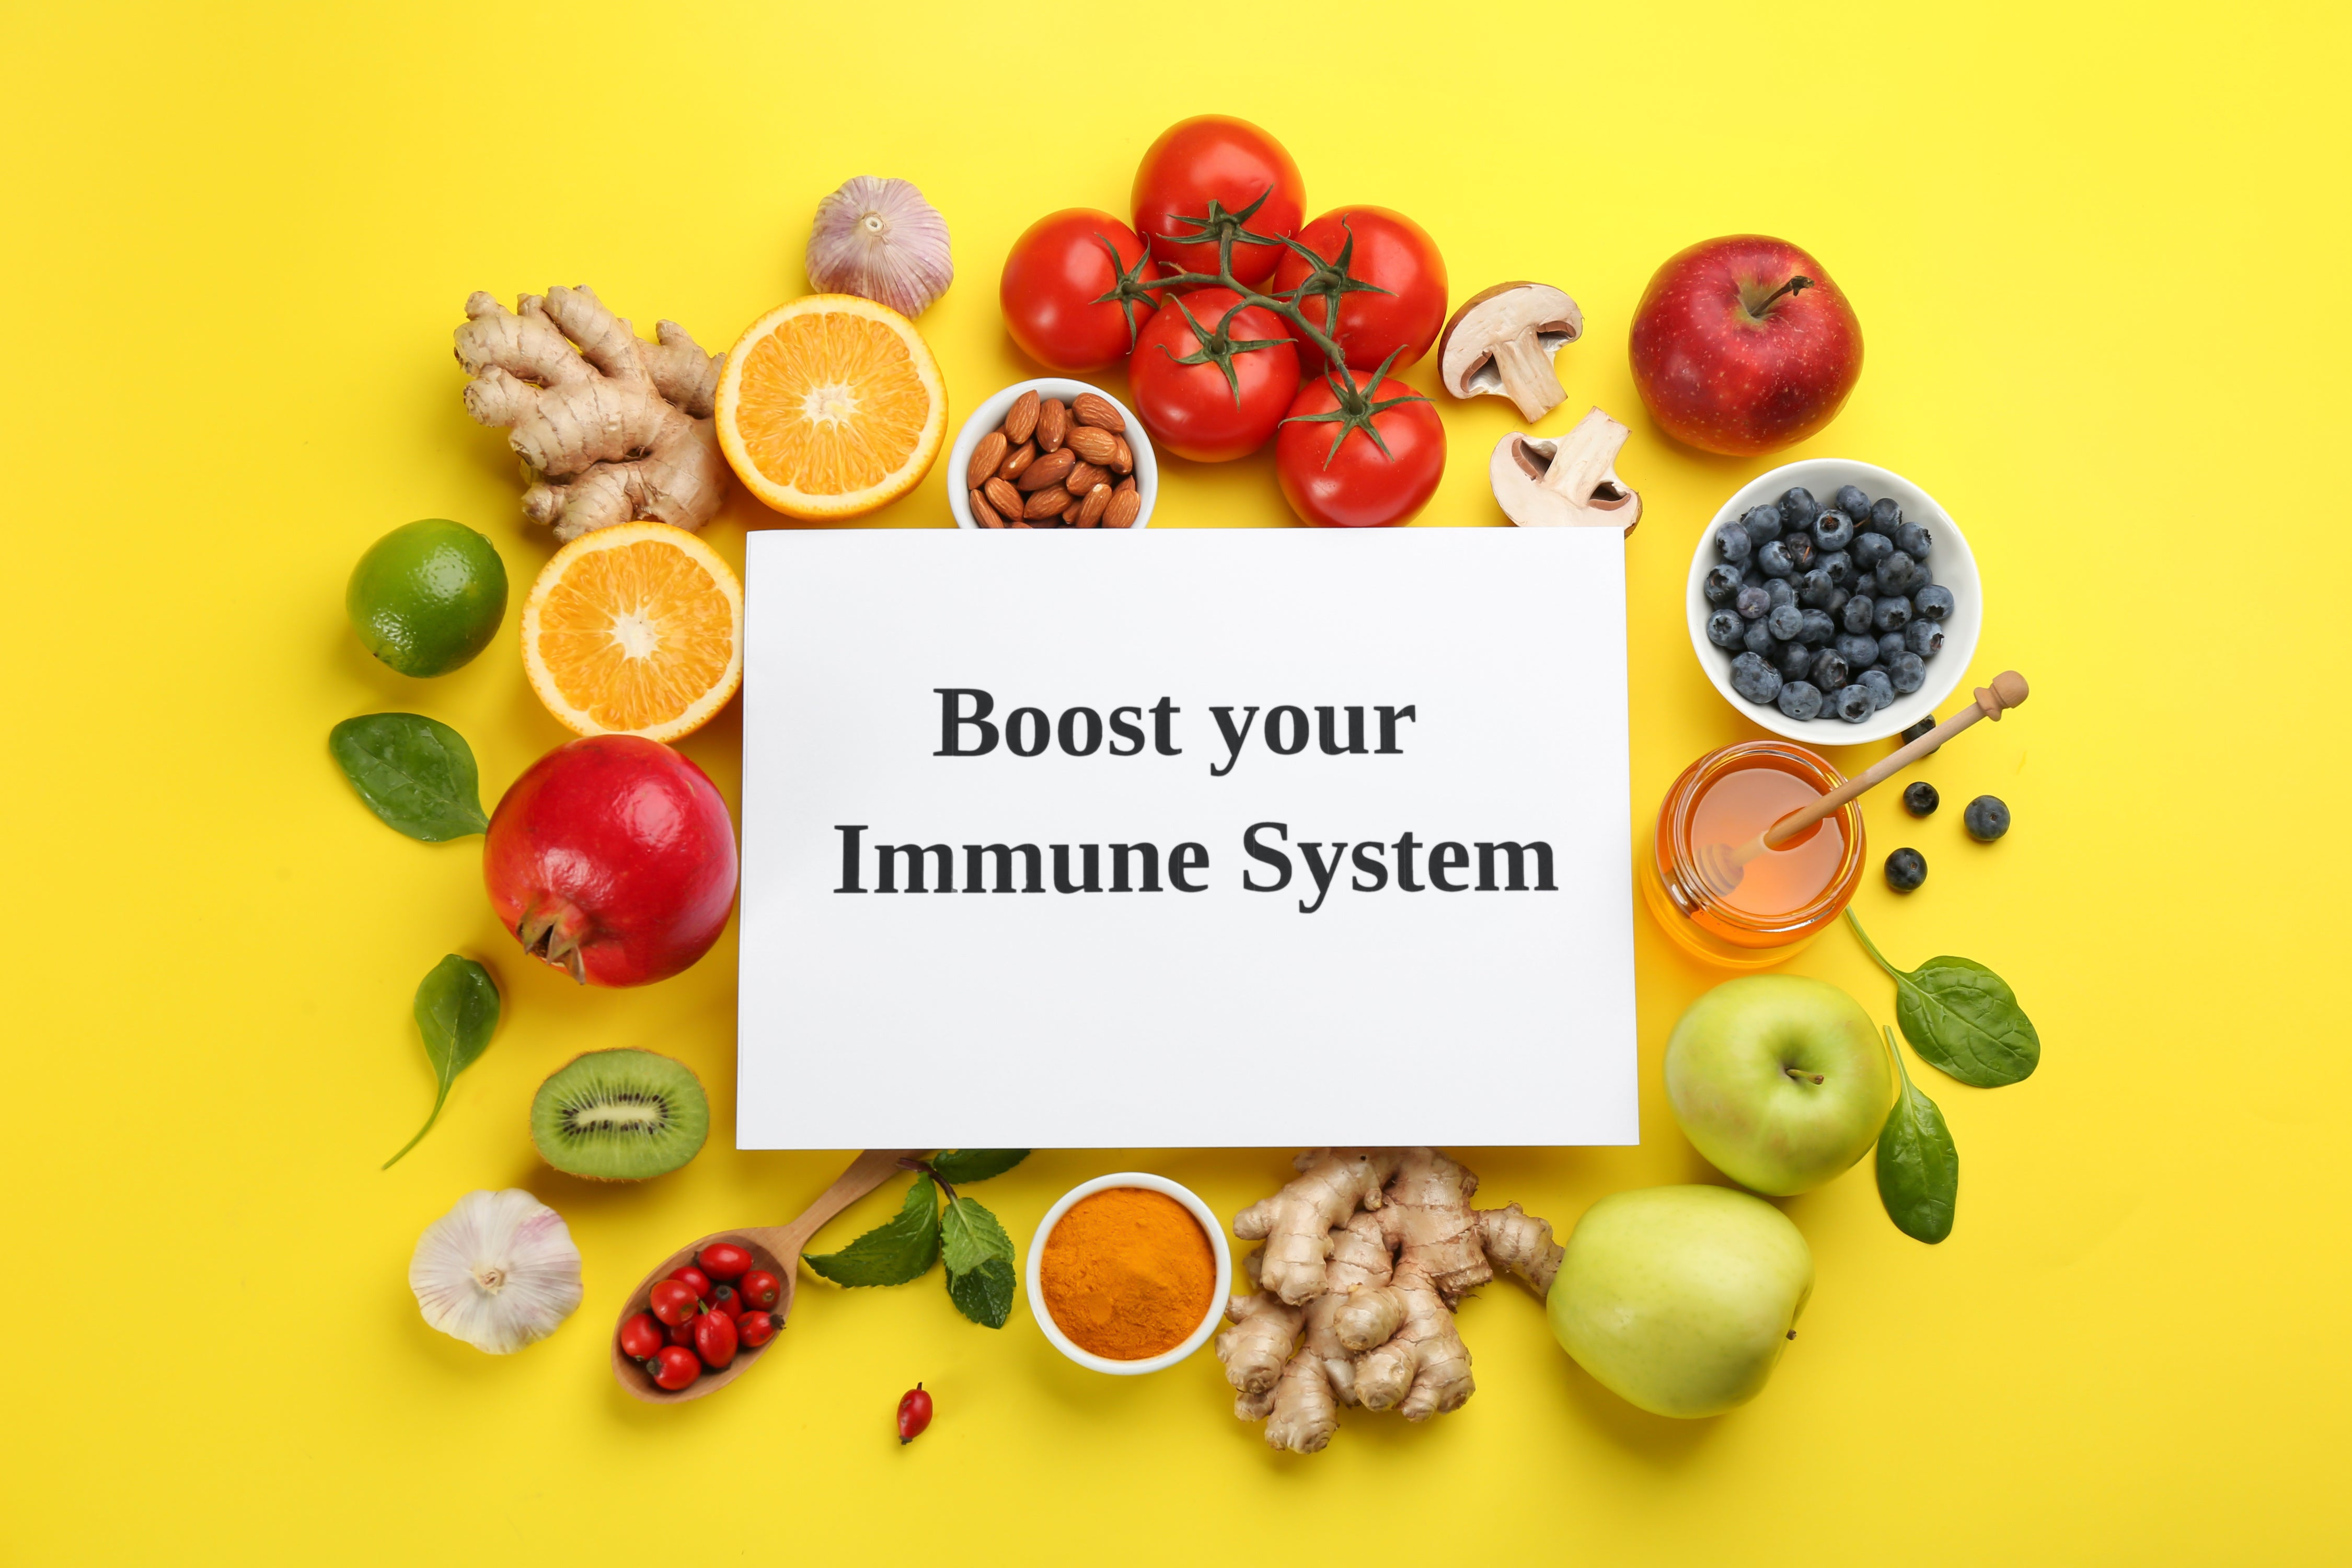 Boost your immunity with greens and fruits